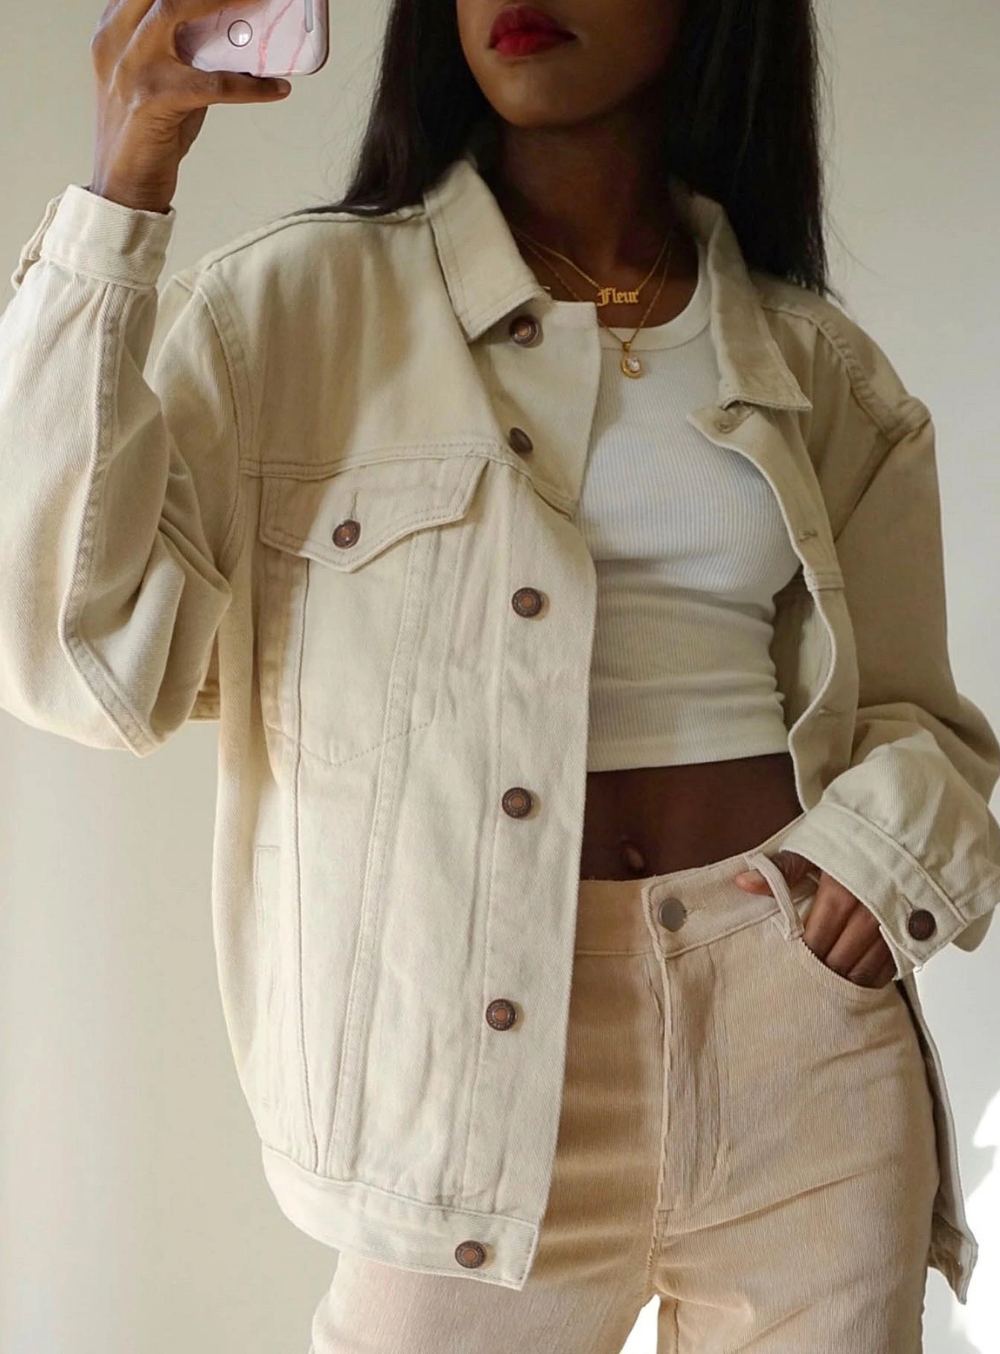 Western Denim Jacket Beige White Denim Jacket Outfit Fashion Inspo Outfits Beige Outfit [ 1354 x 1000 Pixel ]